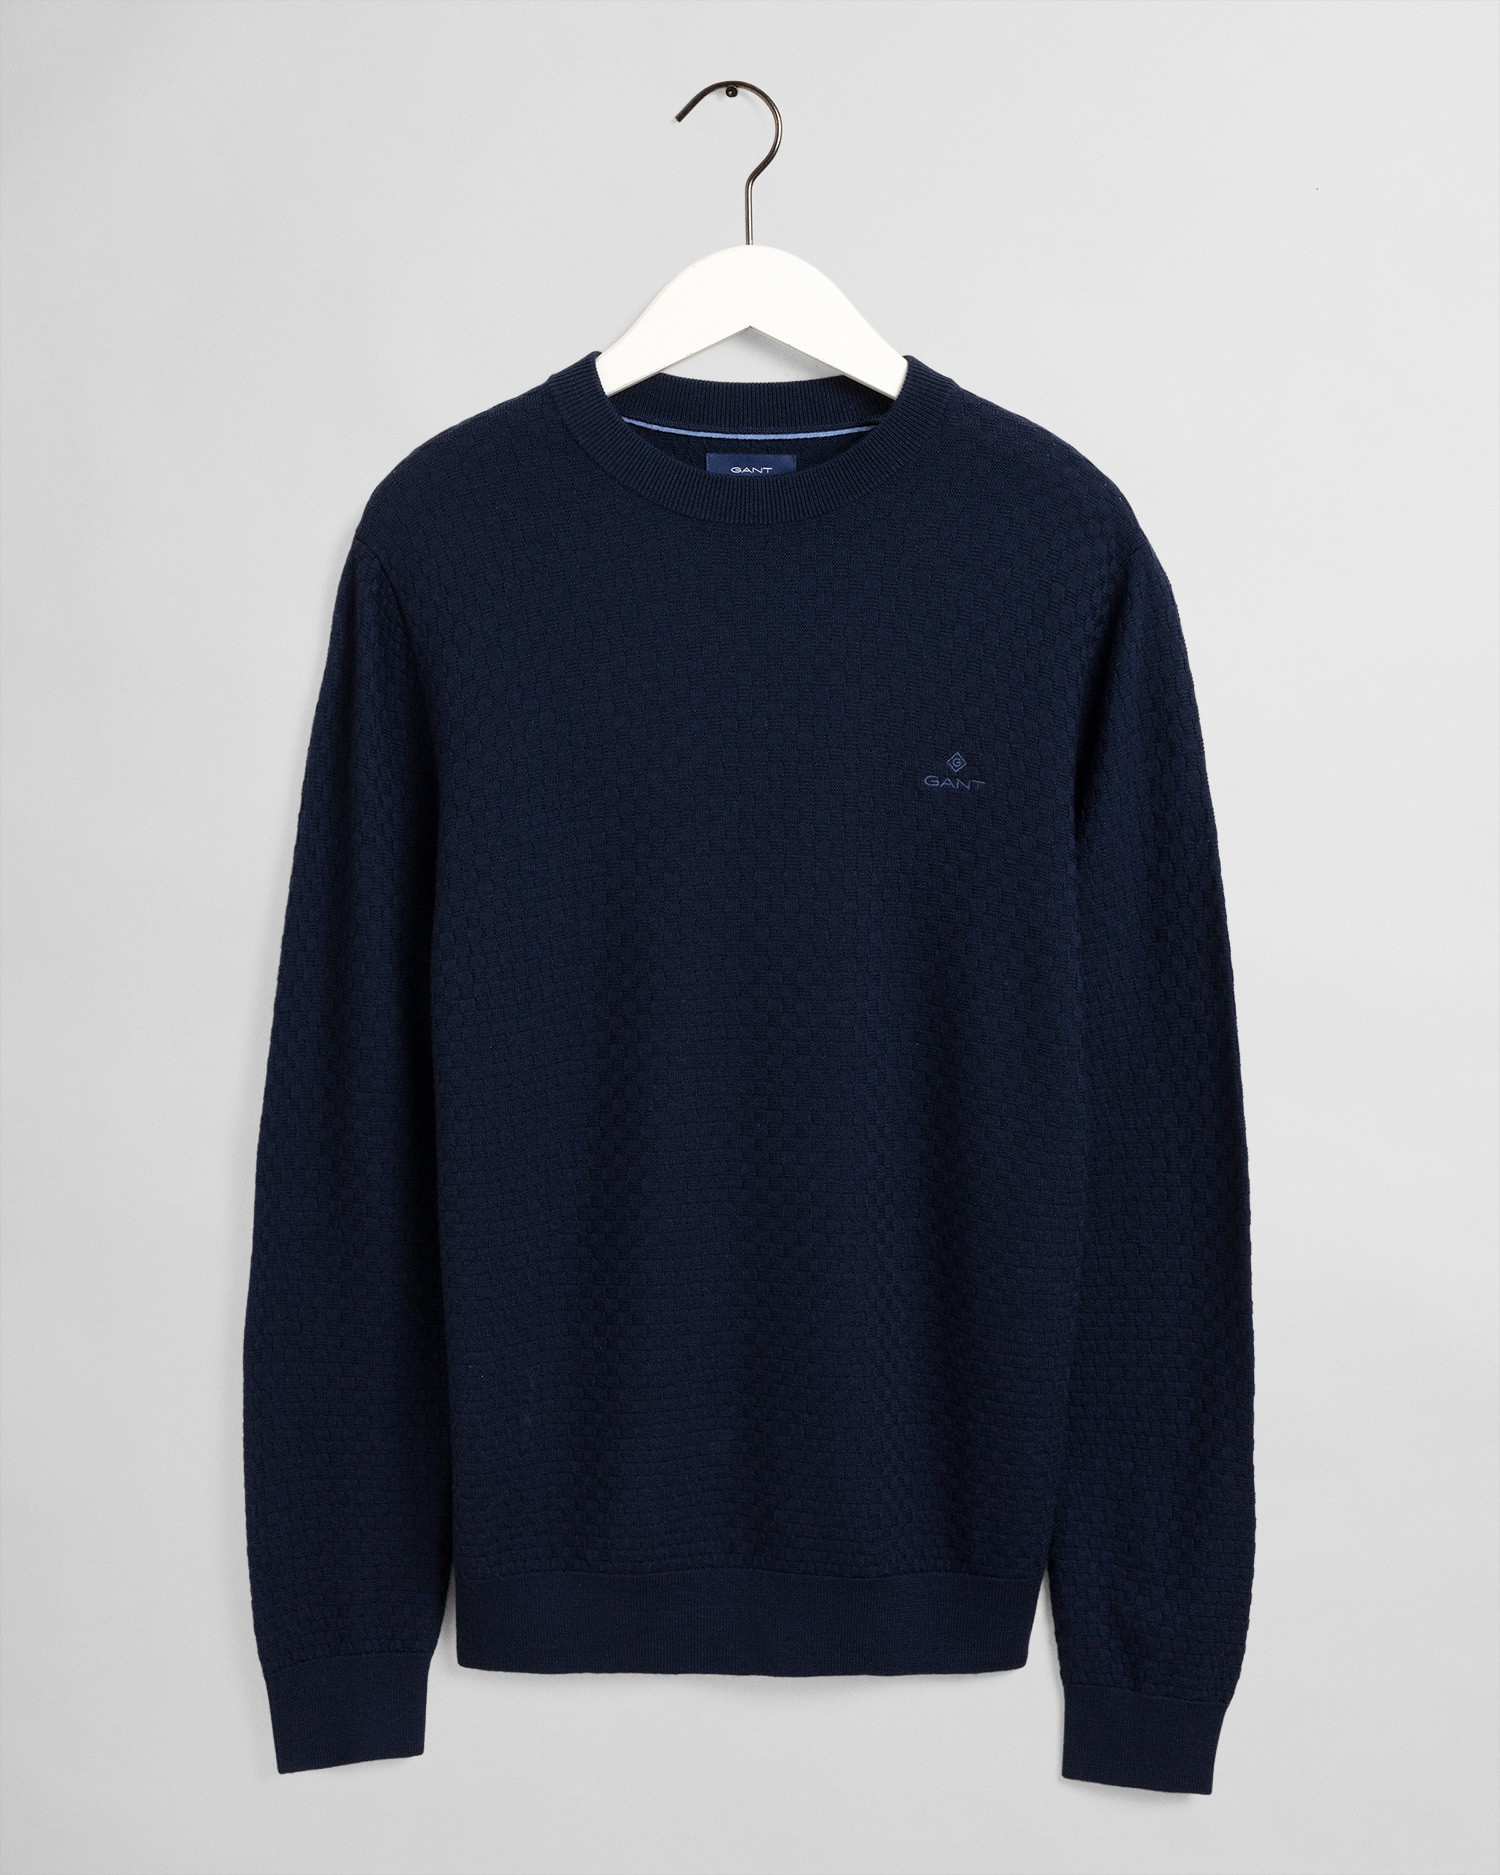 GANT Men's Merino Texture Crew Sweater - 8050096